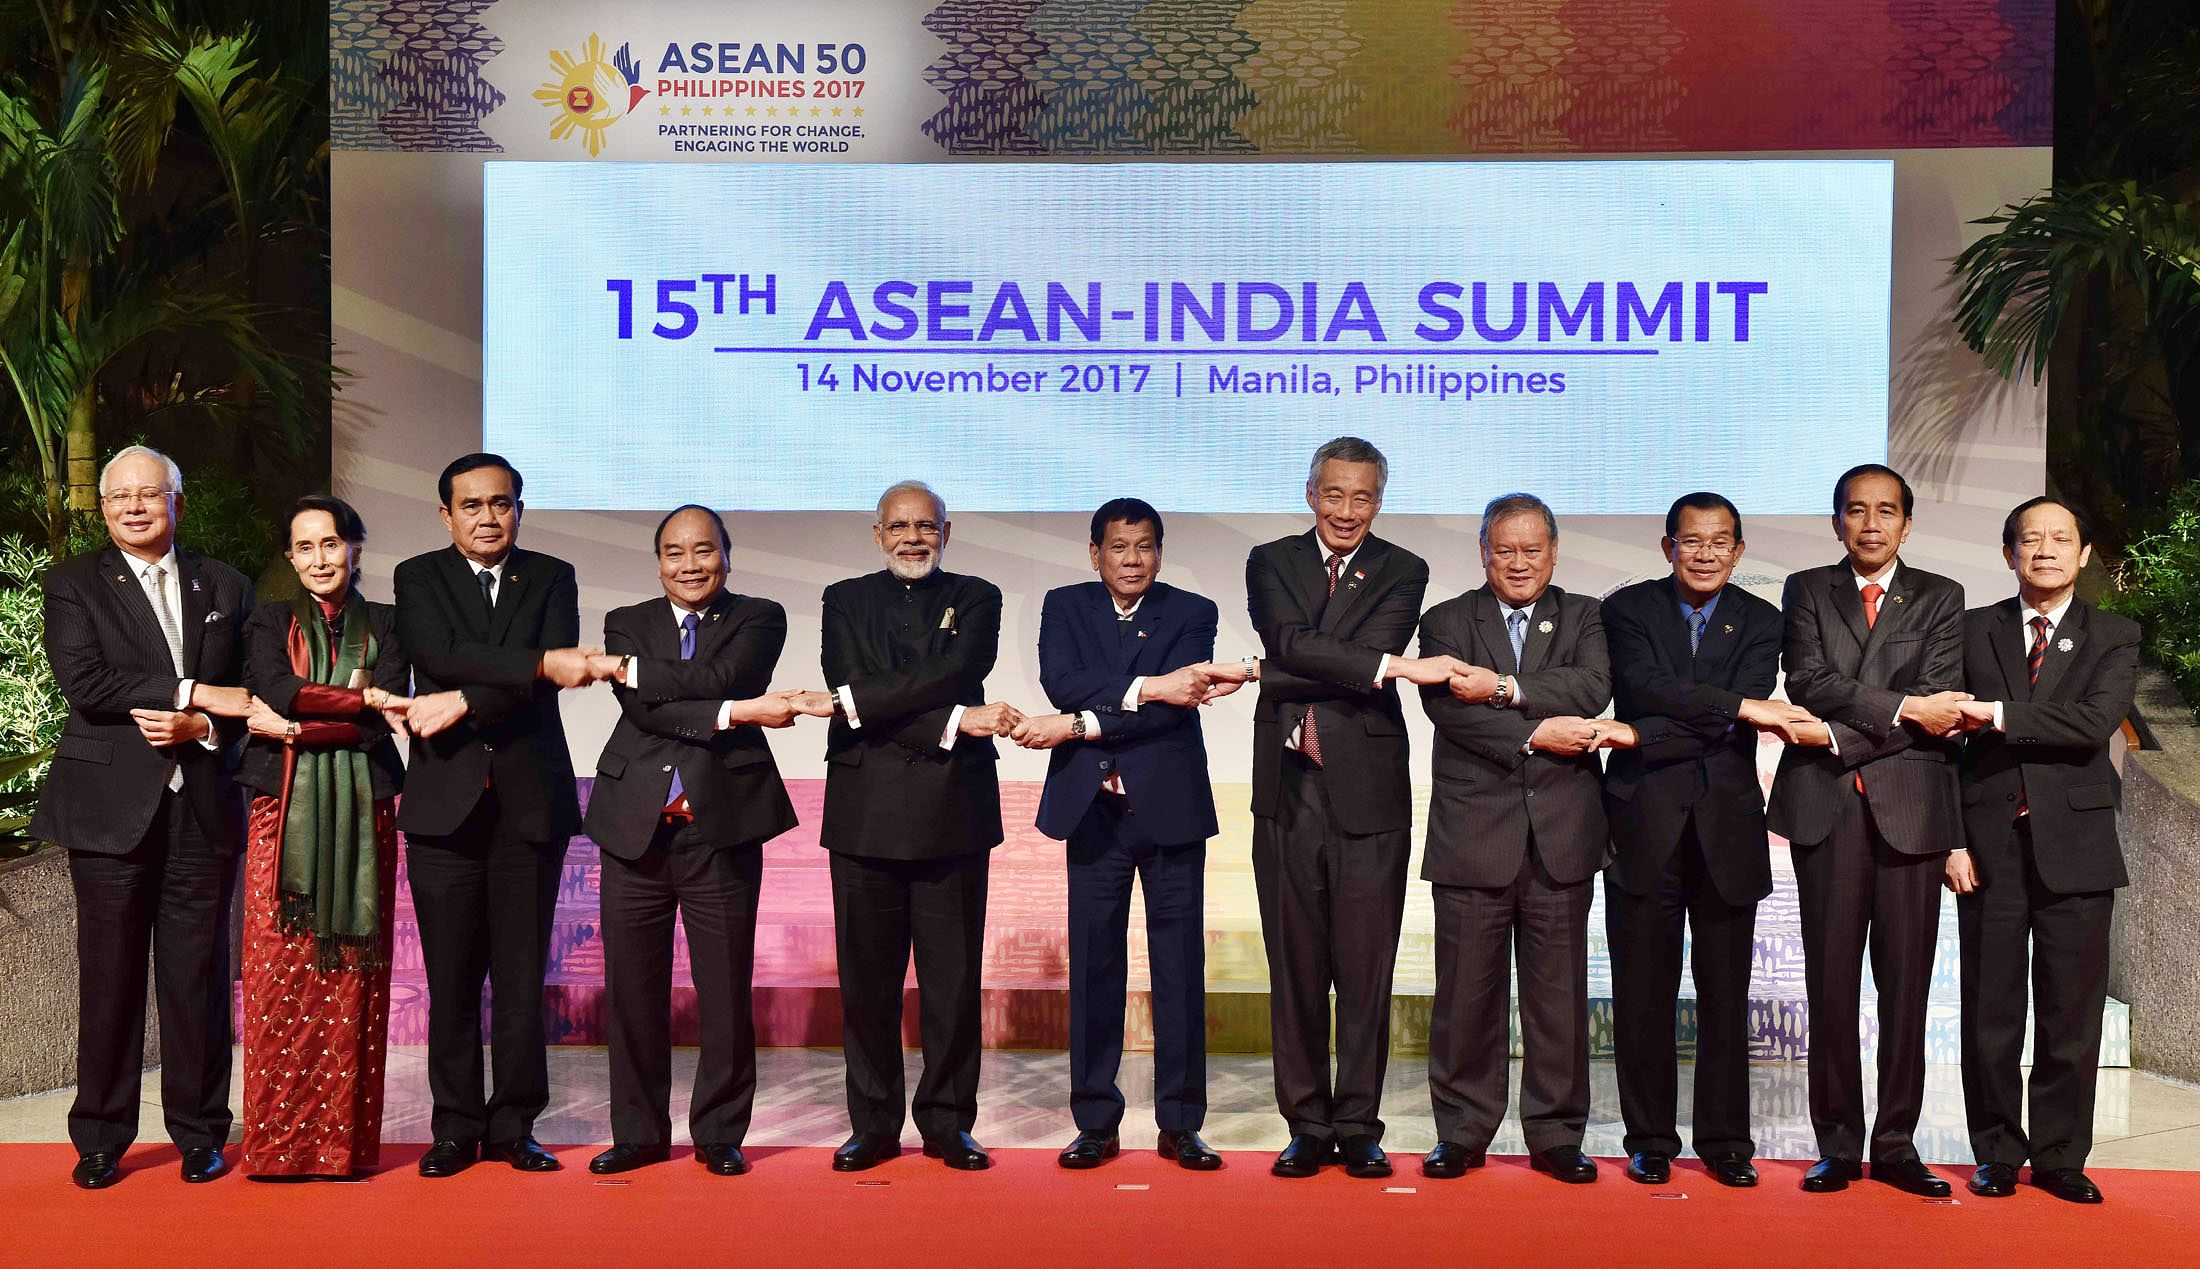 Prime Minister Narendra Modi with other world leaders in a group photograph, at the 15th ASEAN-India Summit, in Manila, Philippines on November 14, 2017. (Source: DD News)